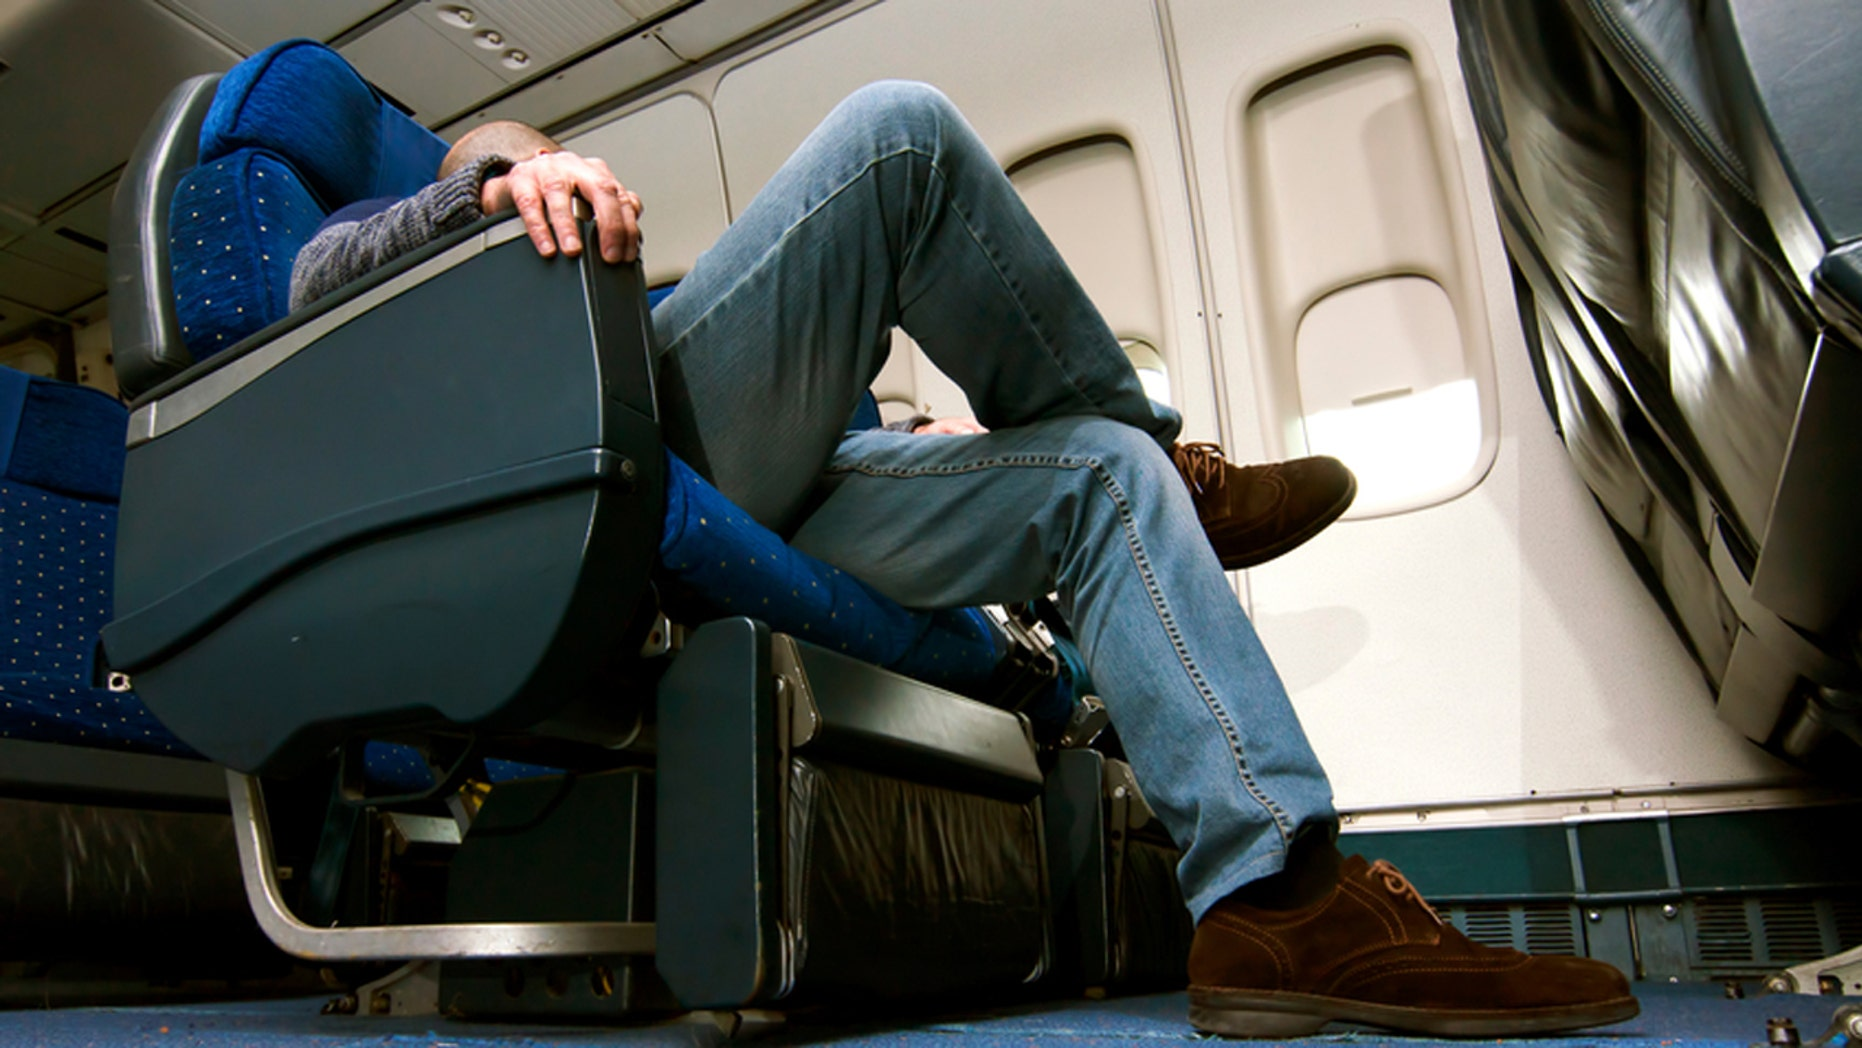 Plenty of room? Not on many commercial airlines.